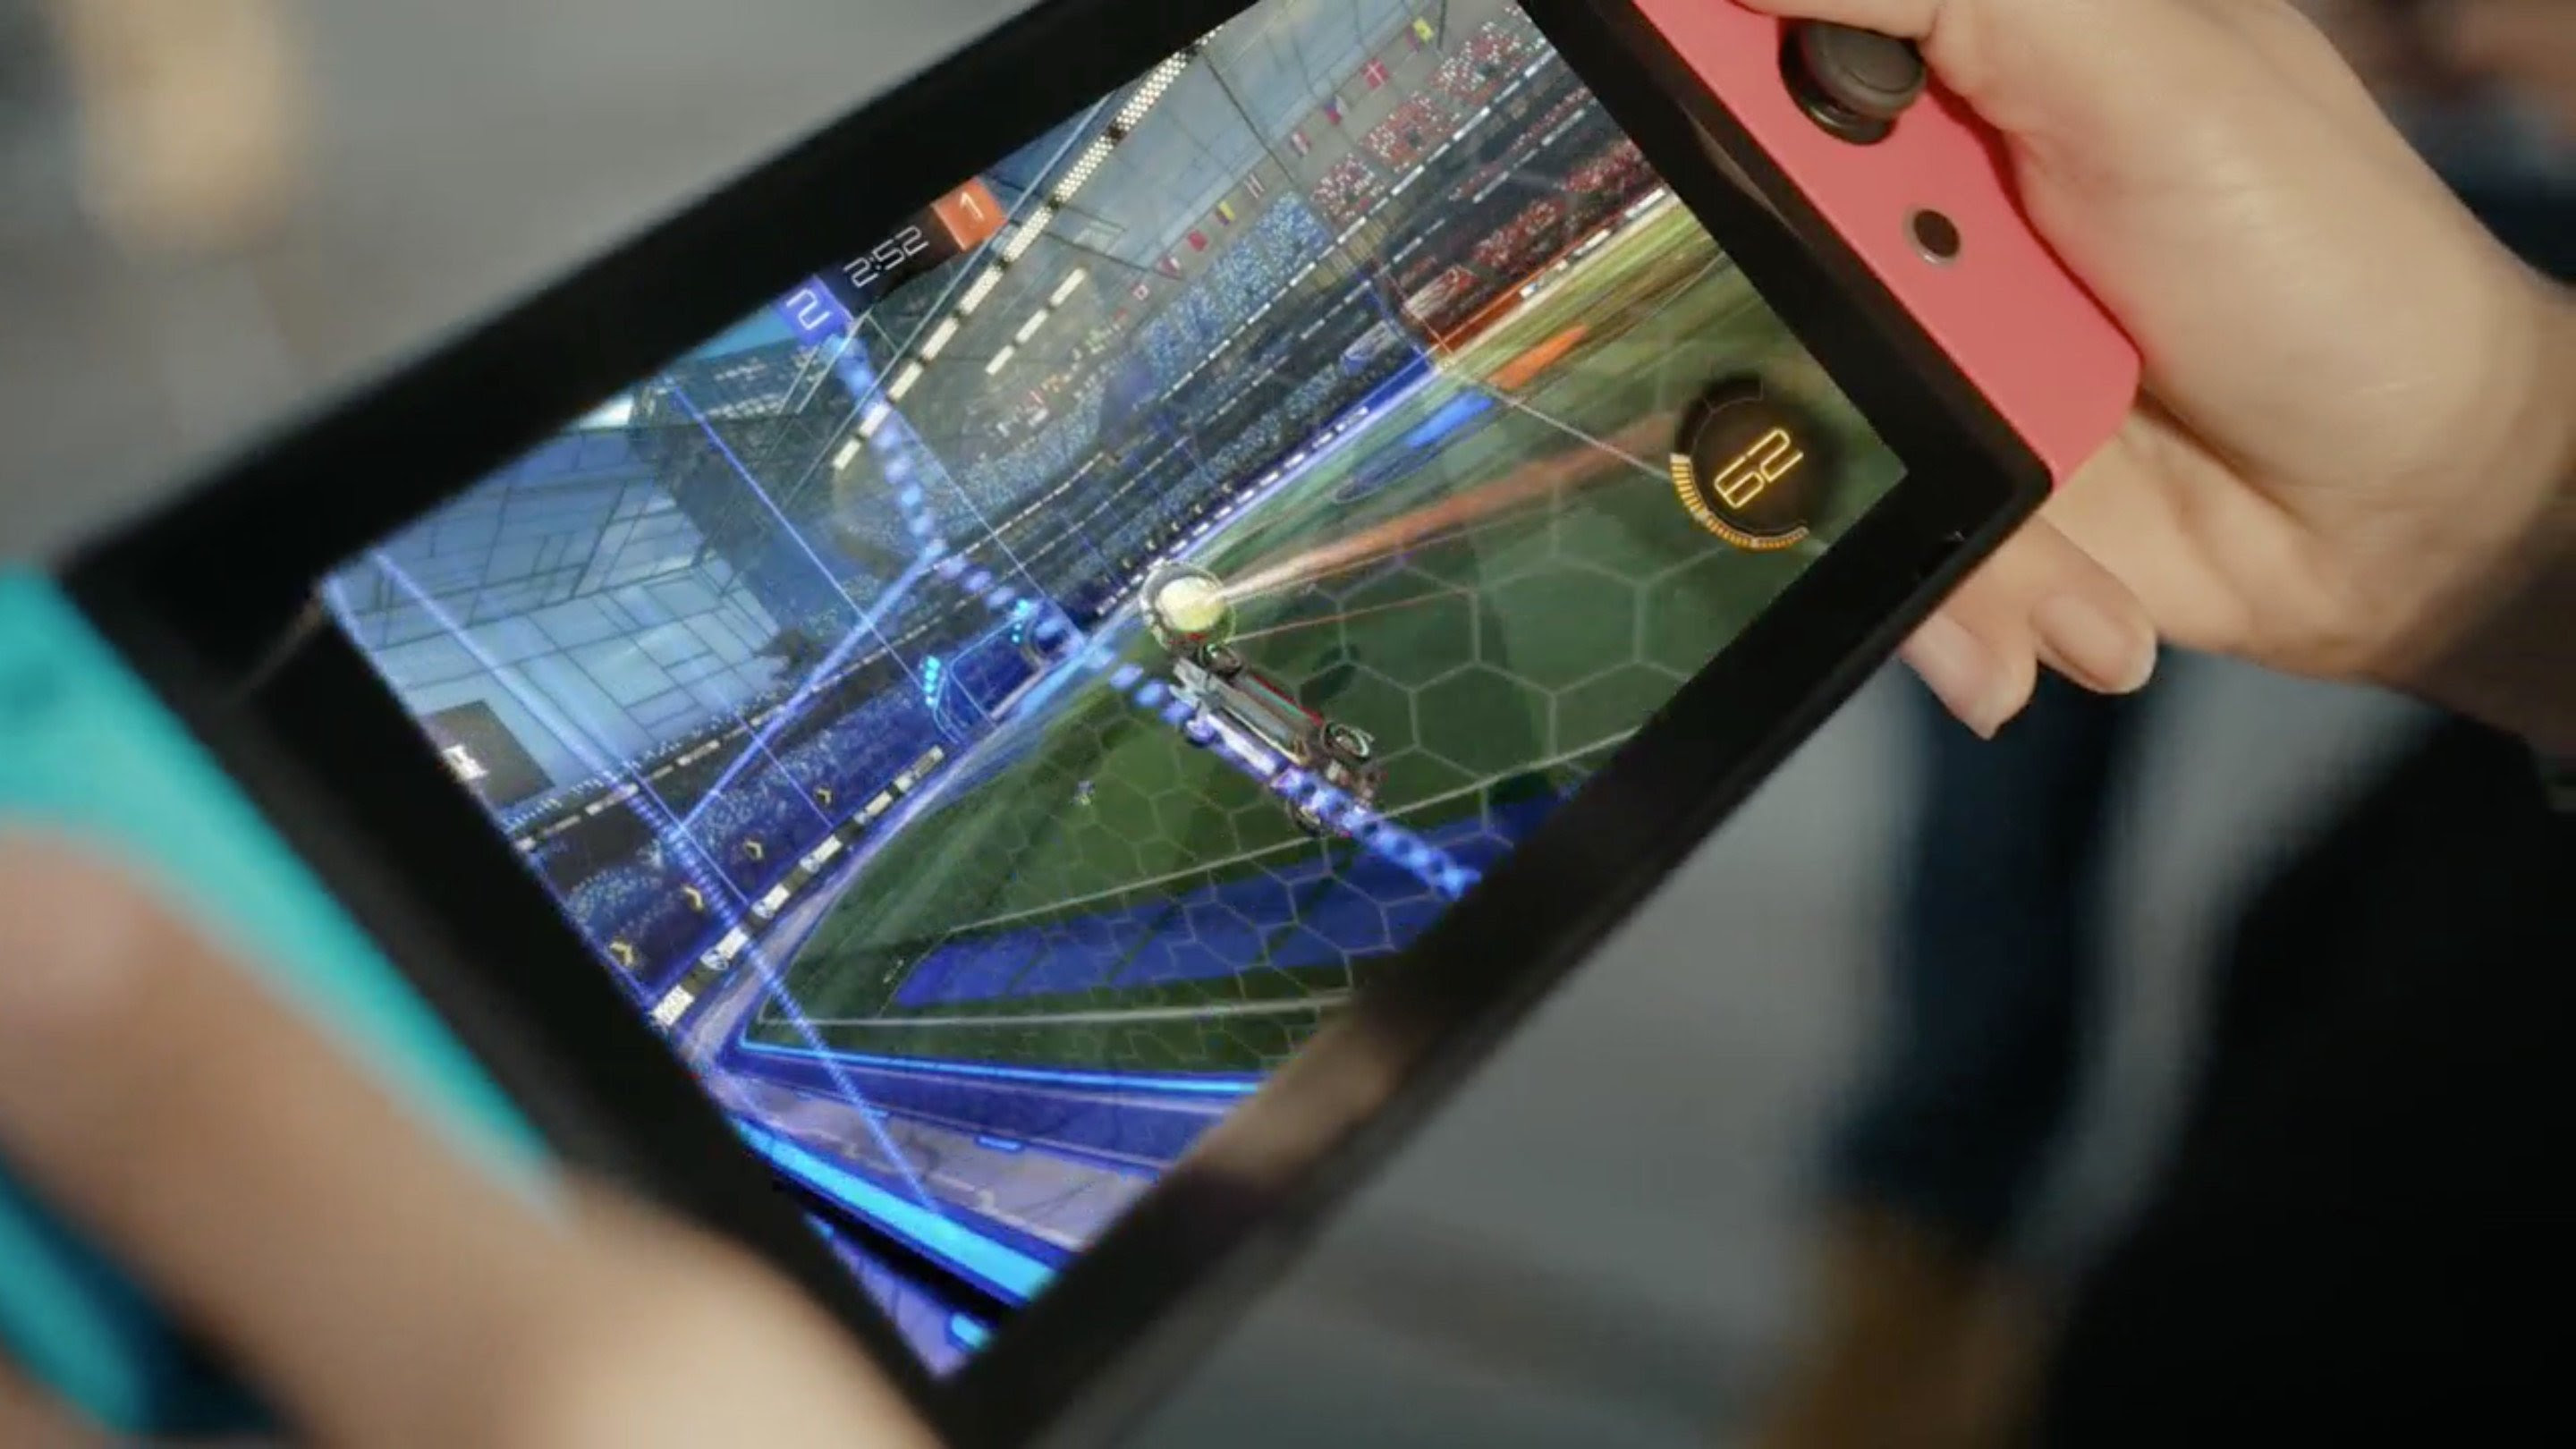 Looks like Rocket League is coming to Switch screenshot